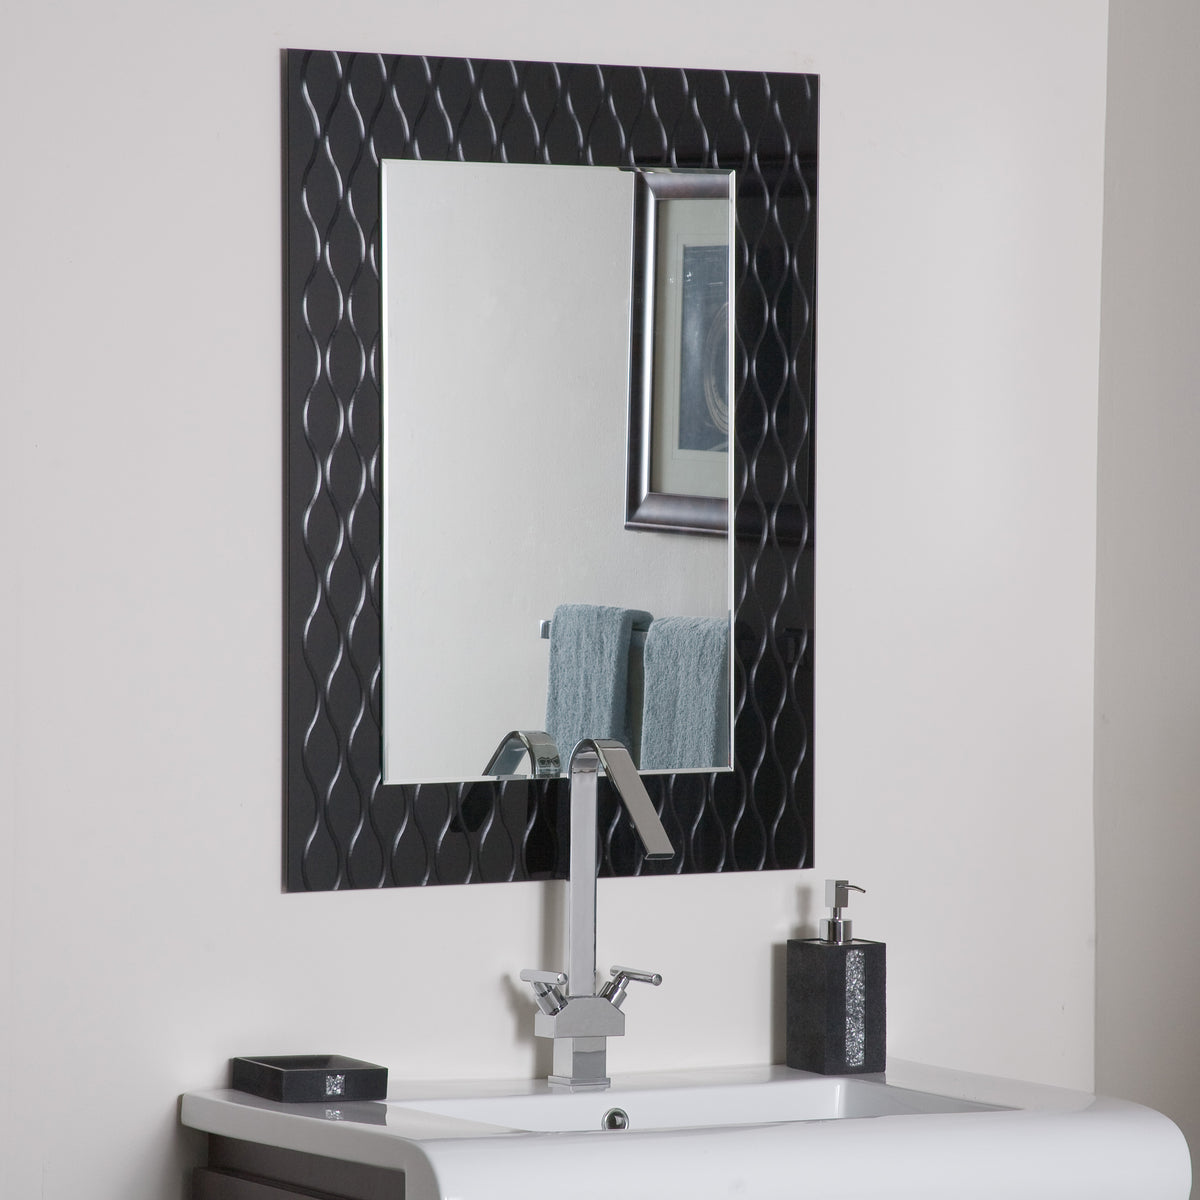 Modern Mirrors For Bathrooms: Decor Wonderland Strands Modern Bathroom Mirror